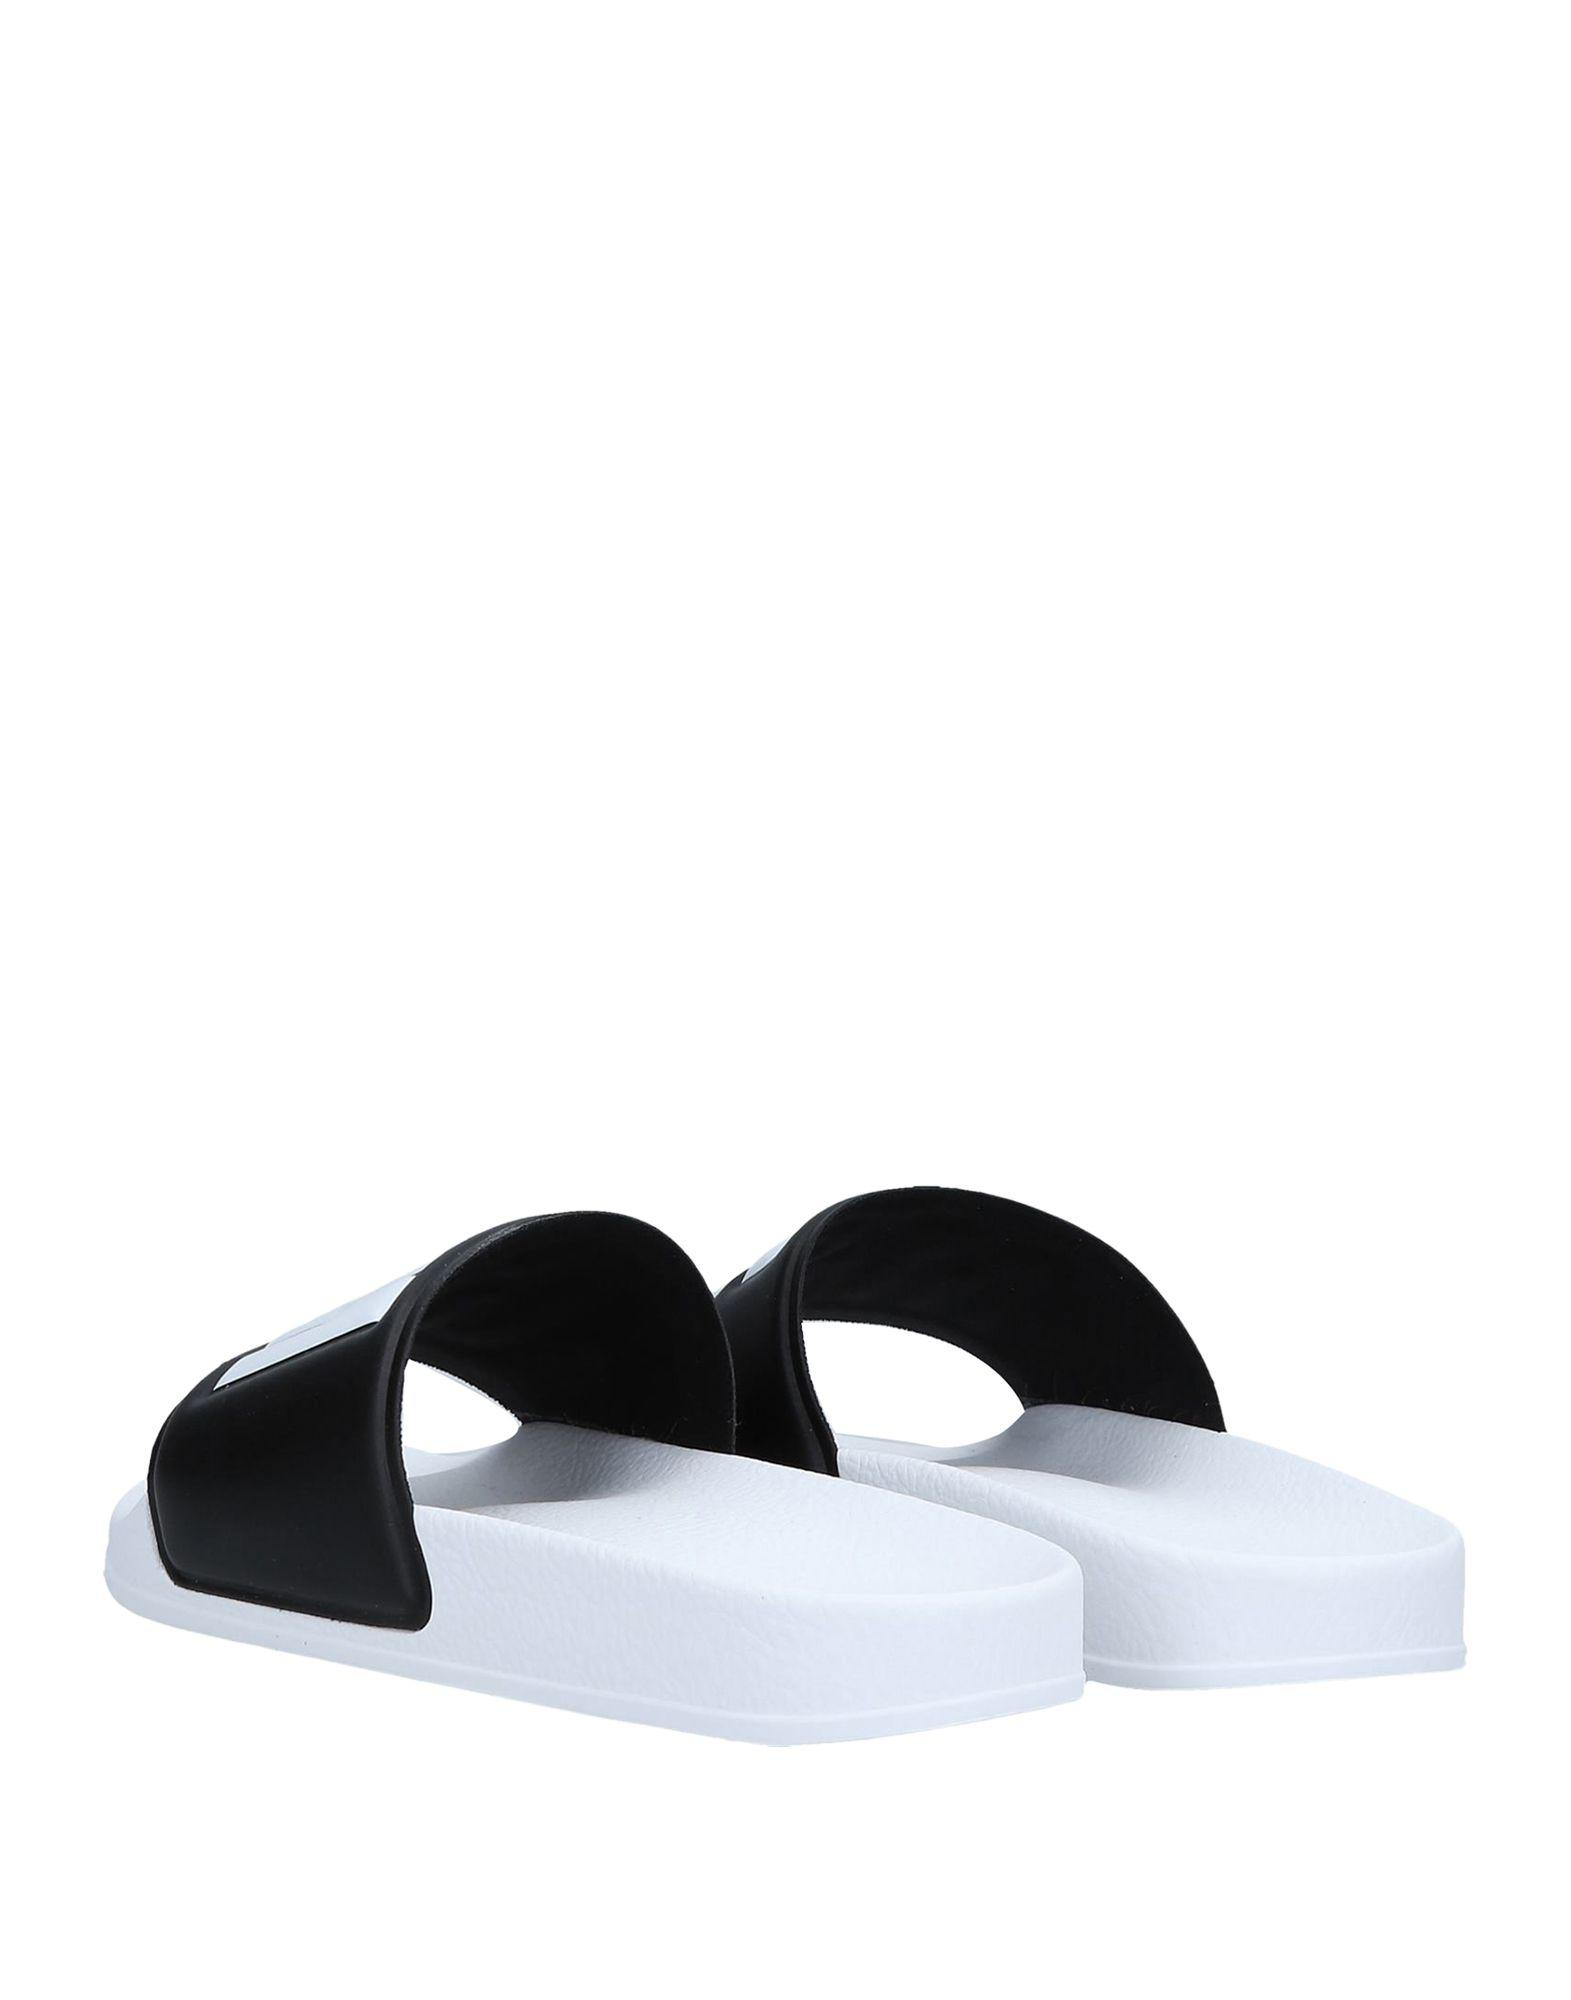 Sandals Black Msgm In Lyst Save 46 n0k8wOPX